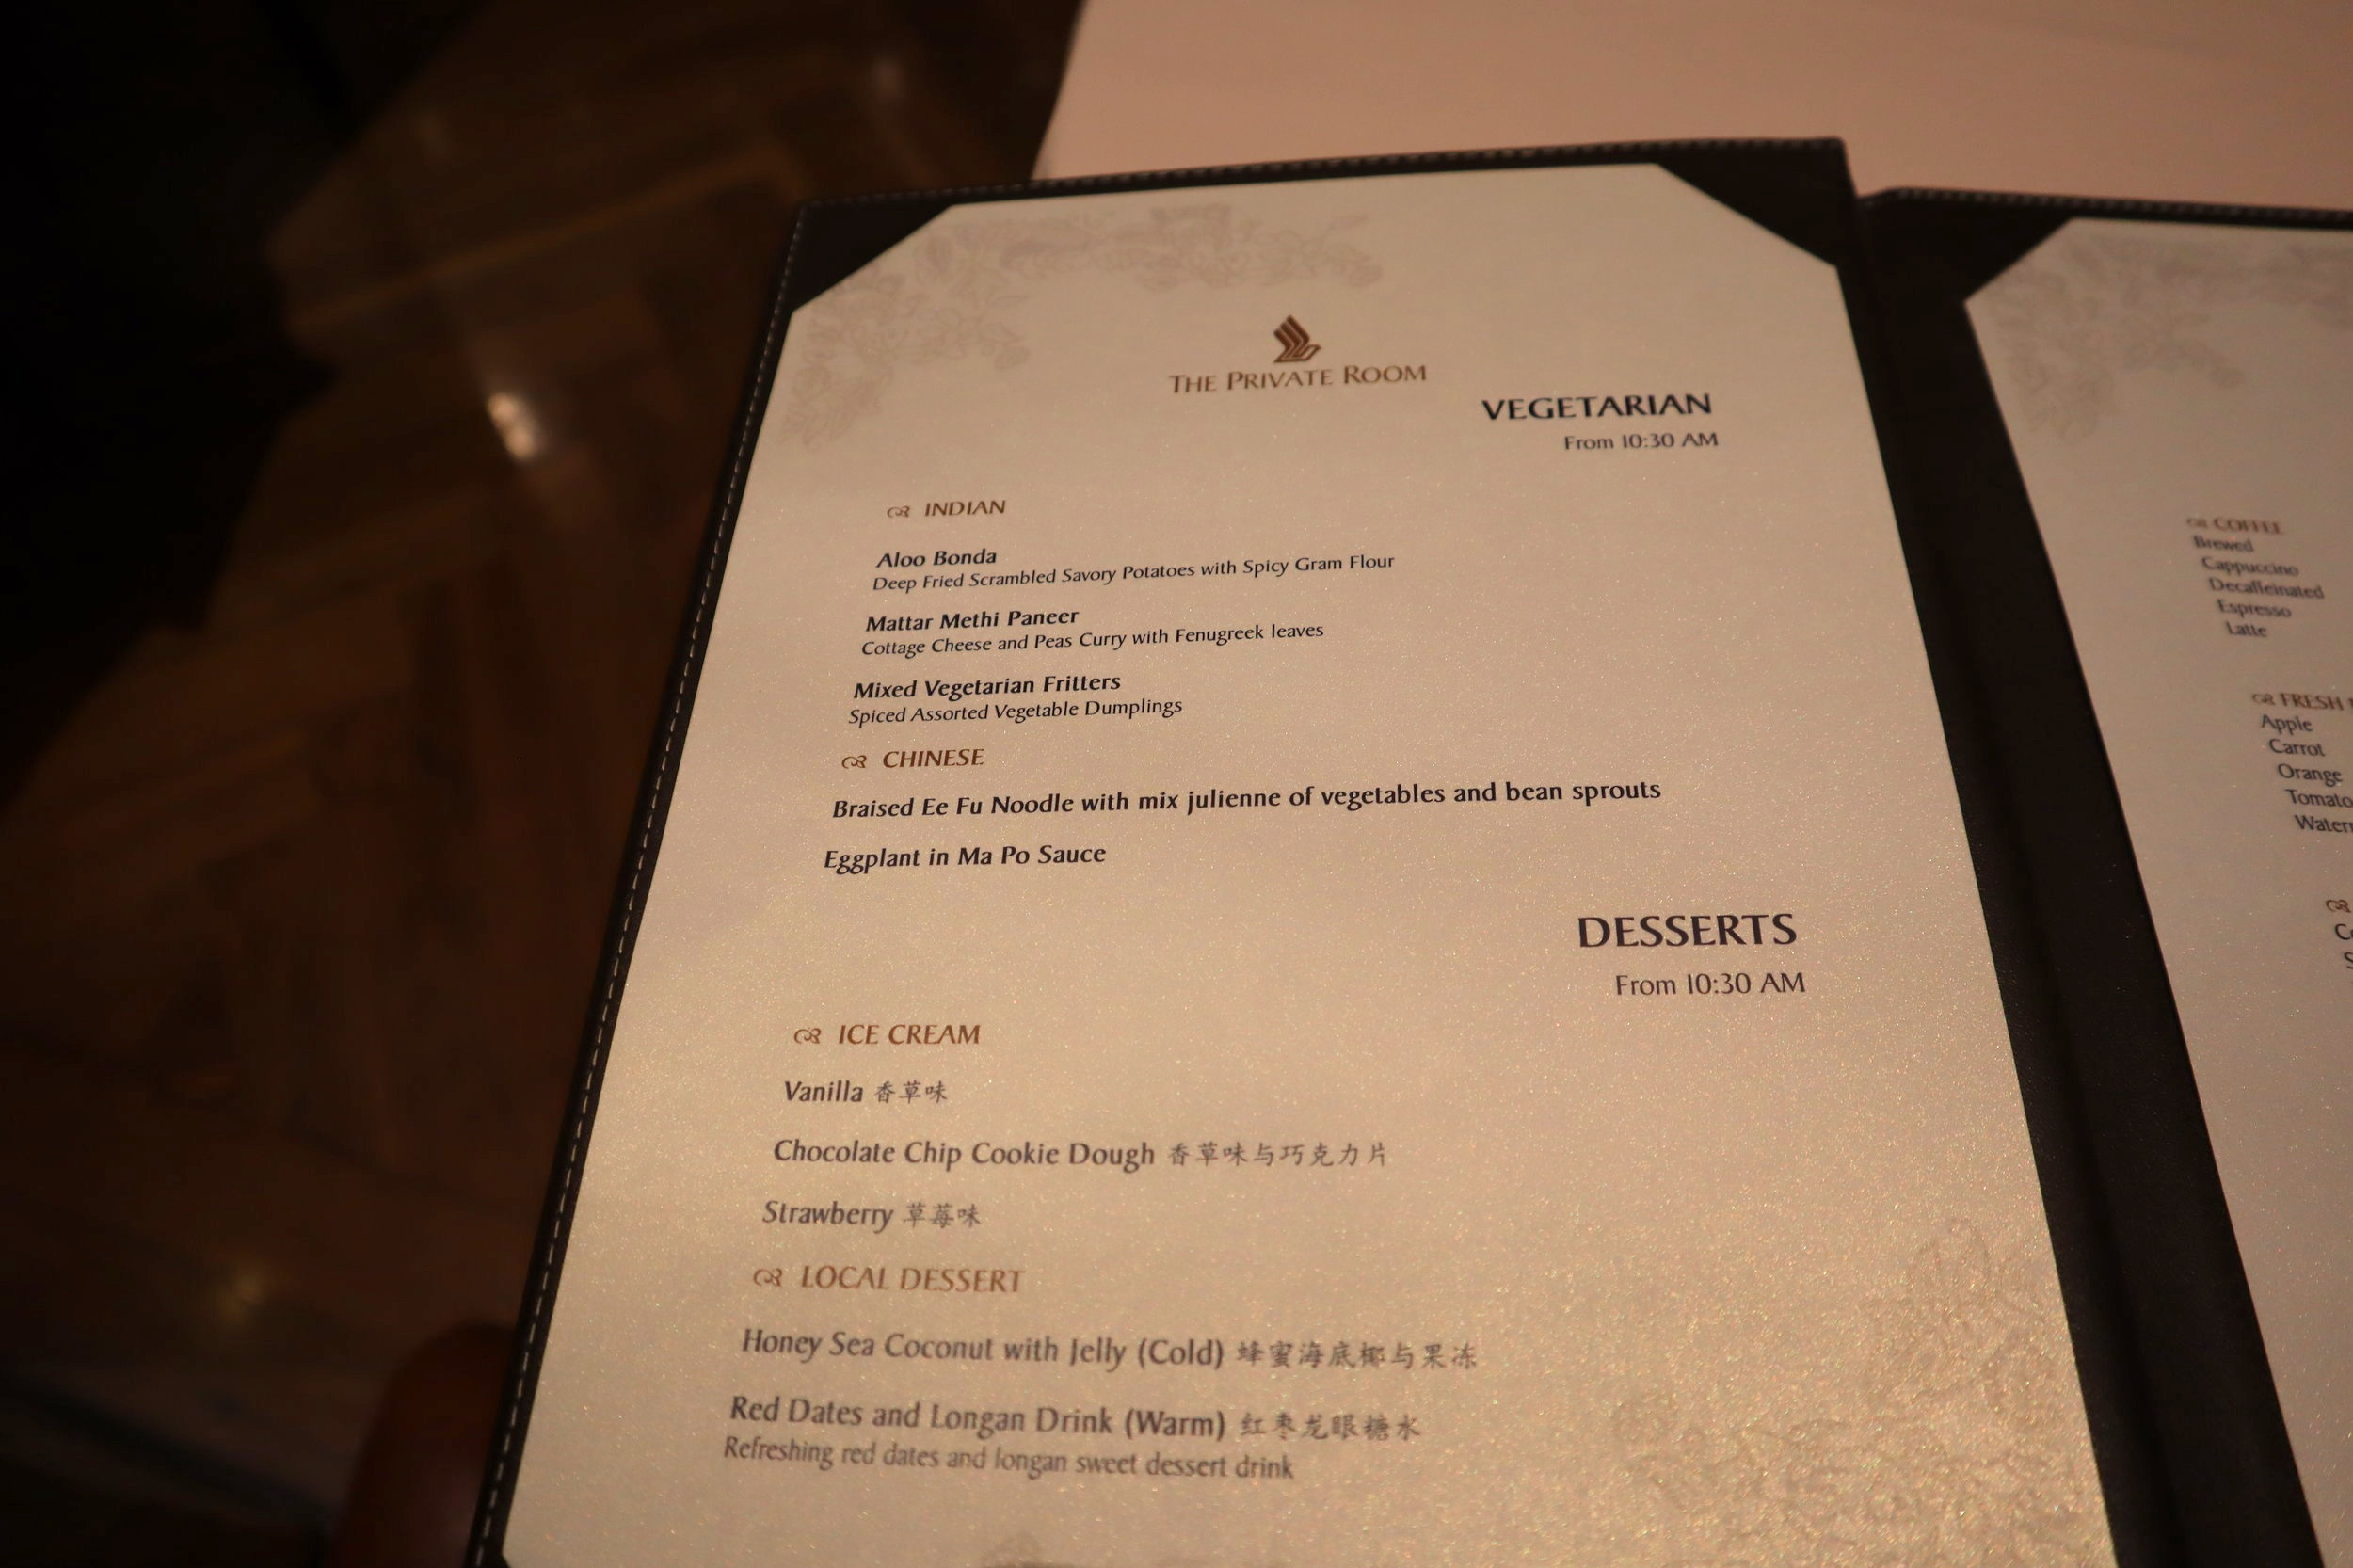 The Private Room by Singapore Airlines – Vegetarian and Dessert menus